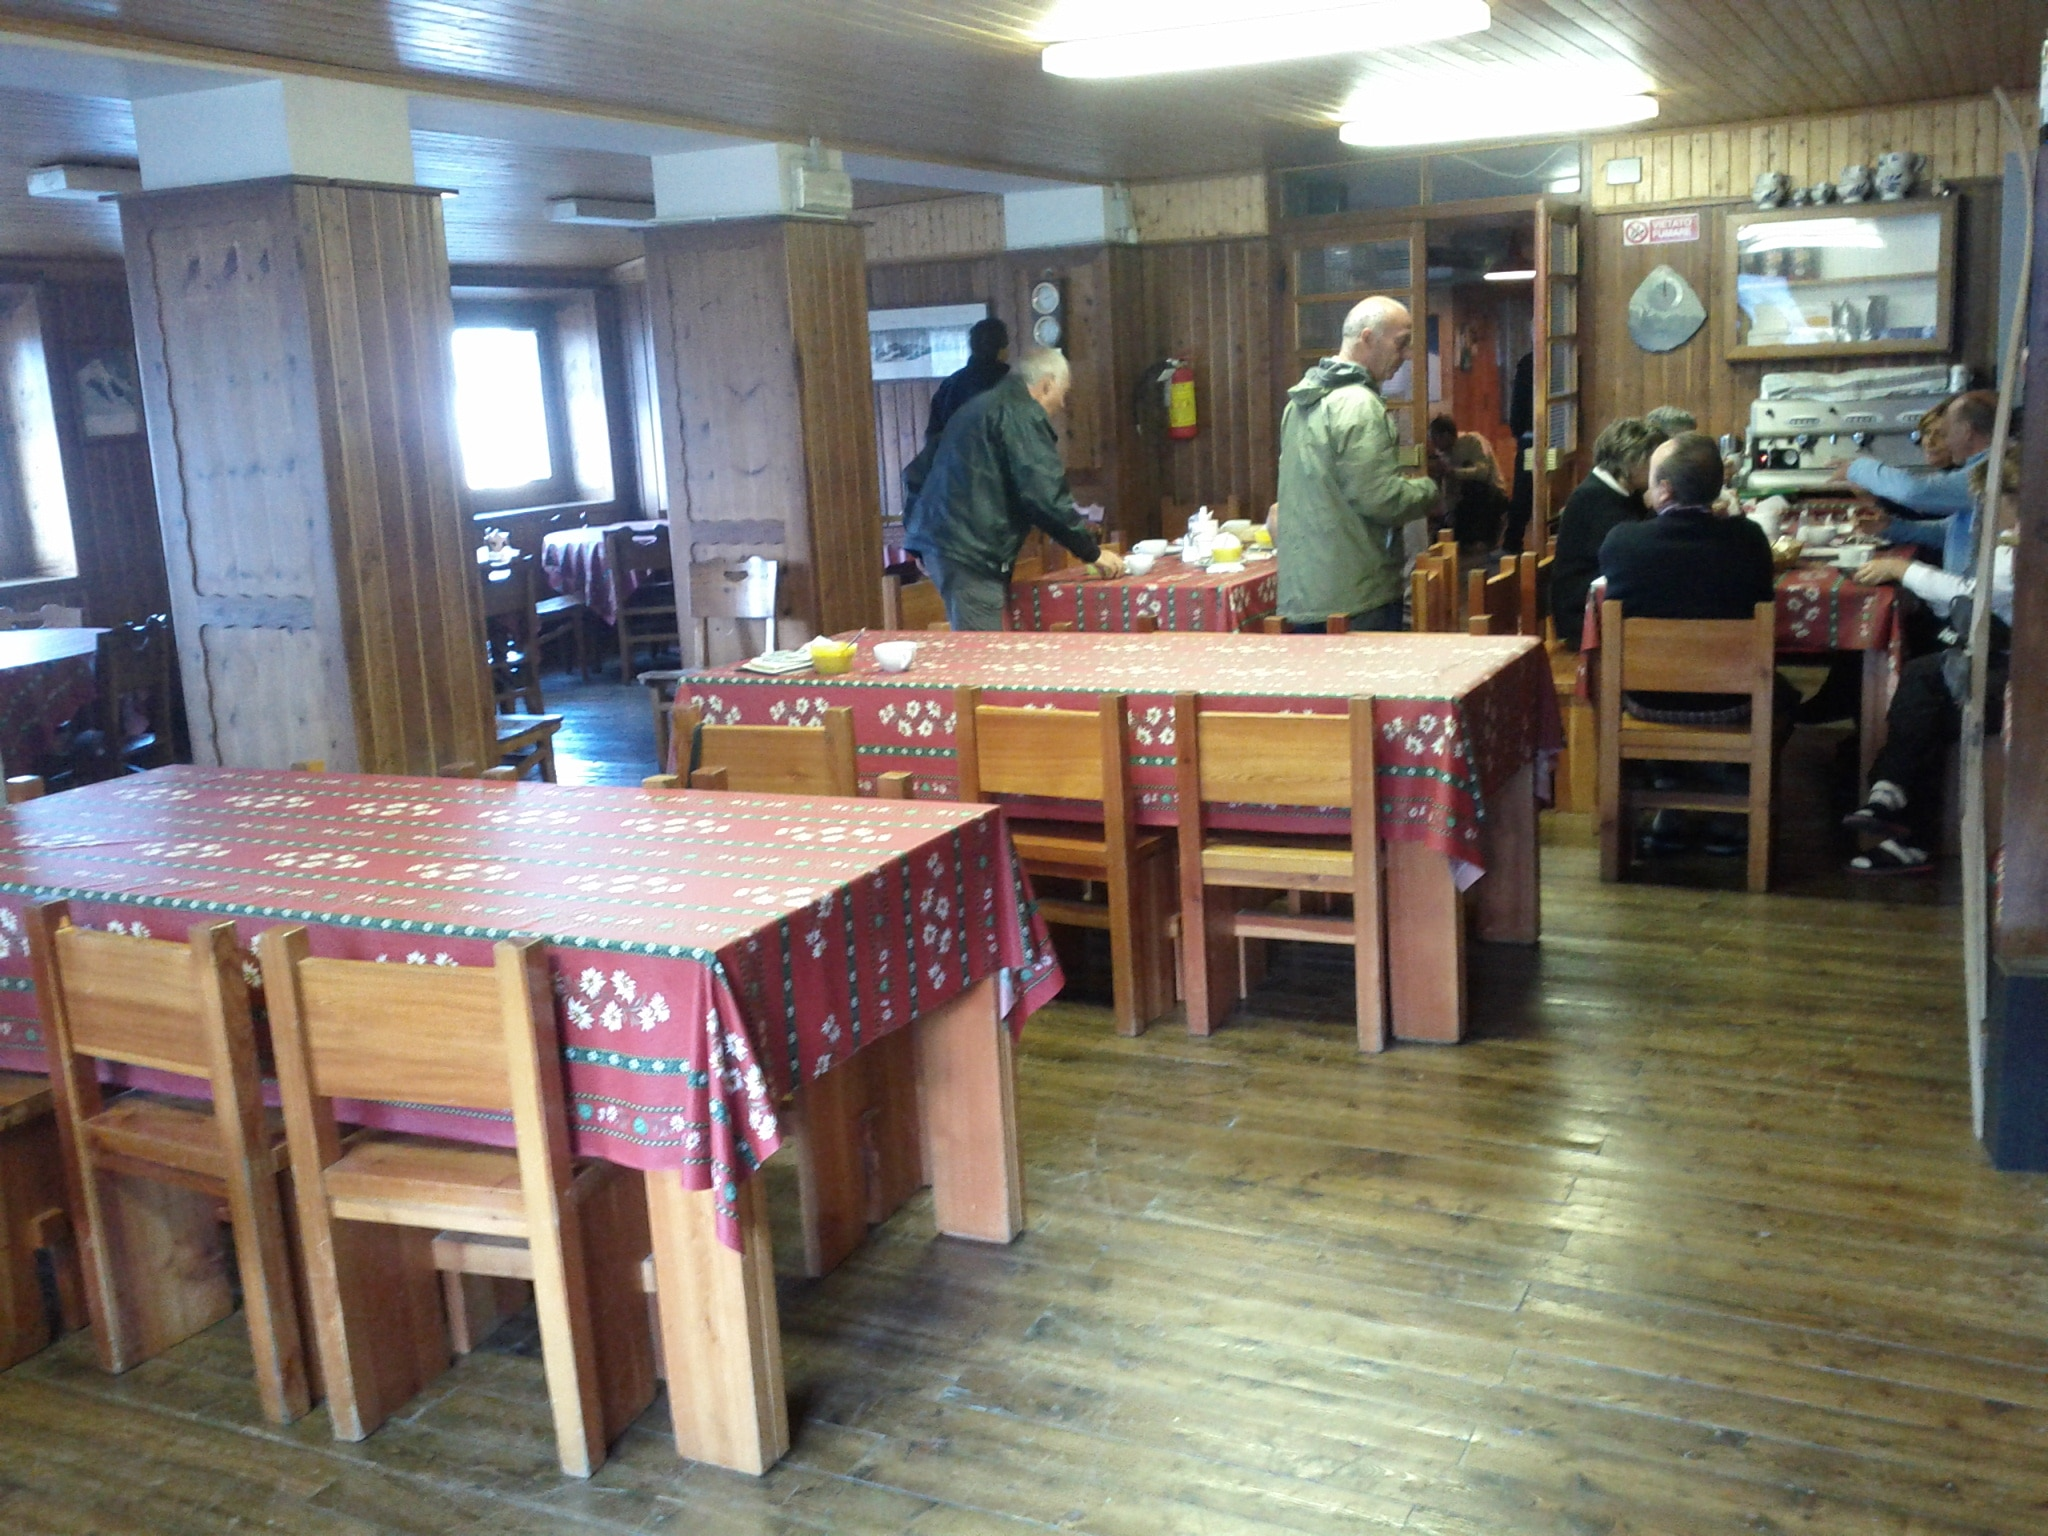 Part of the dining area at the Marinelli hut.